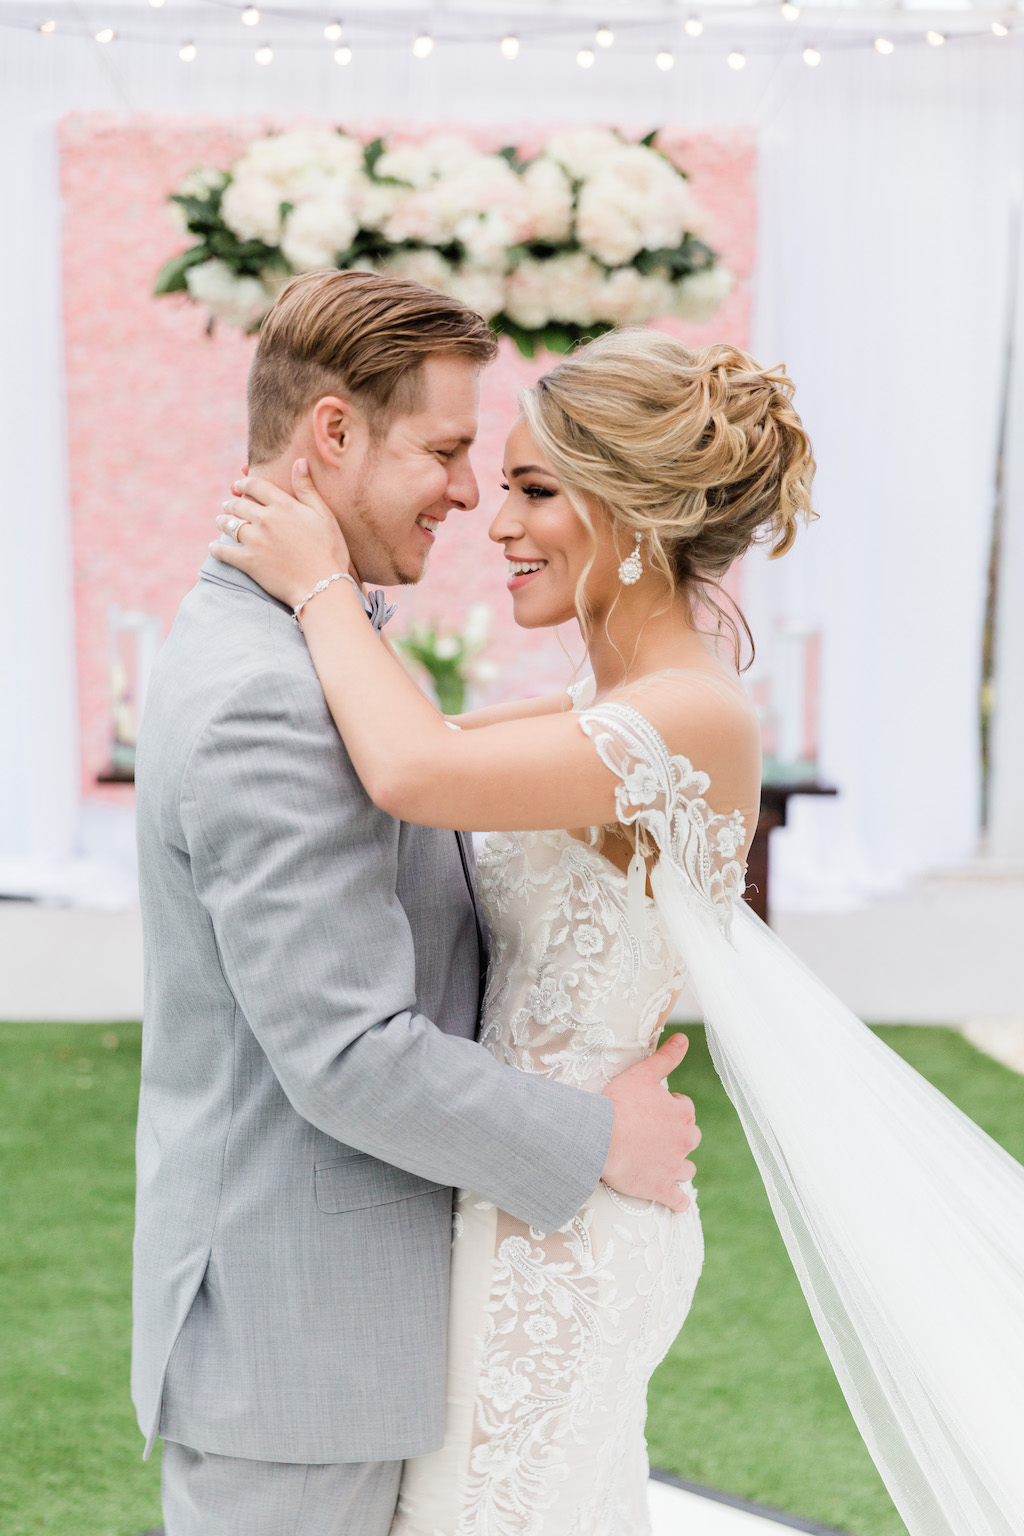 Modern Florida Bride and Groom on Dance Floor, Whimsical Garden Wedding Decor   Tampa Bay Hair and Makeup Artists Femme Akoi   Tampa Bay Couture Wedding Dress Boutique Isabel O'Neil Bridal Collection  